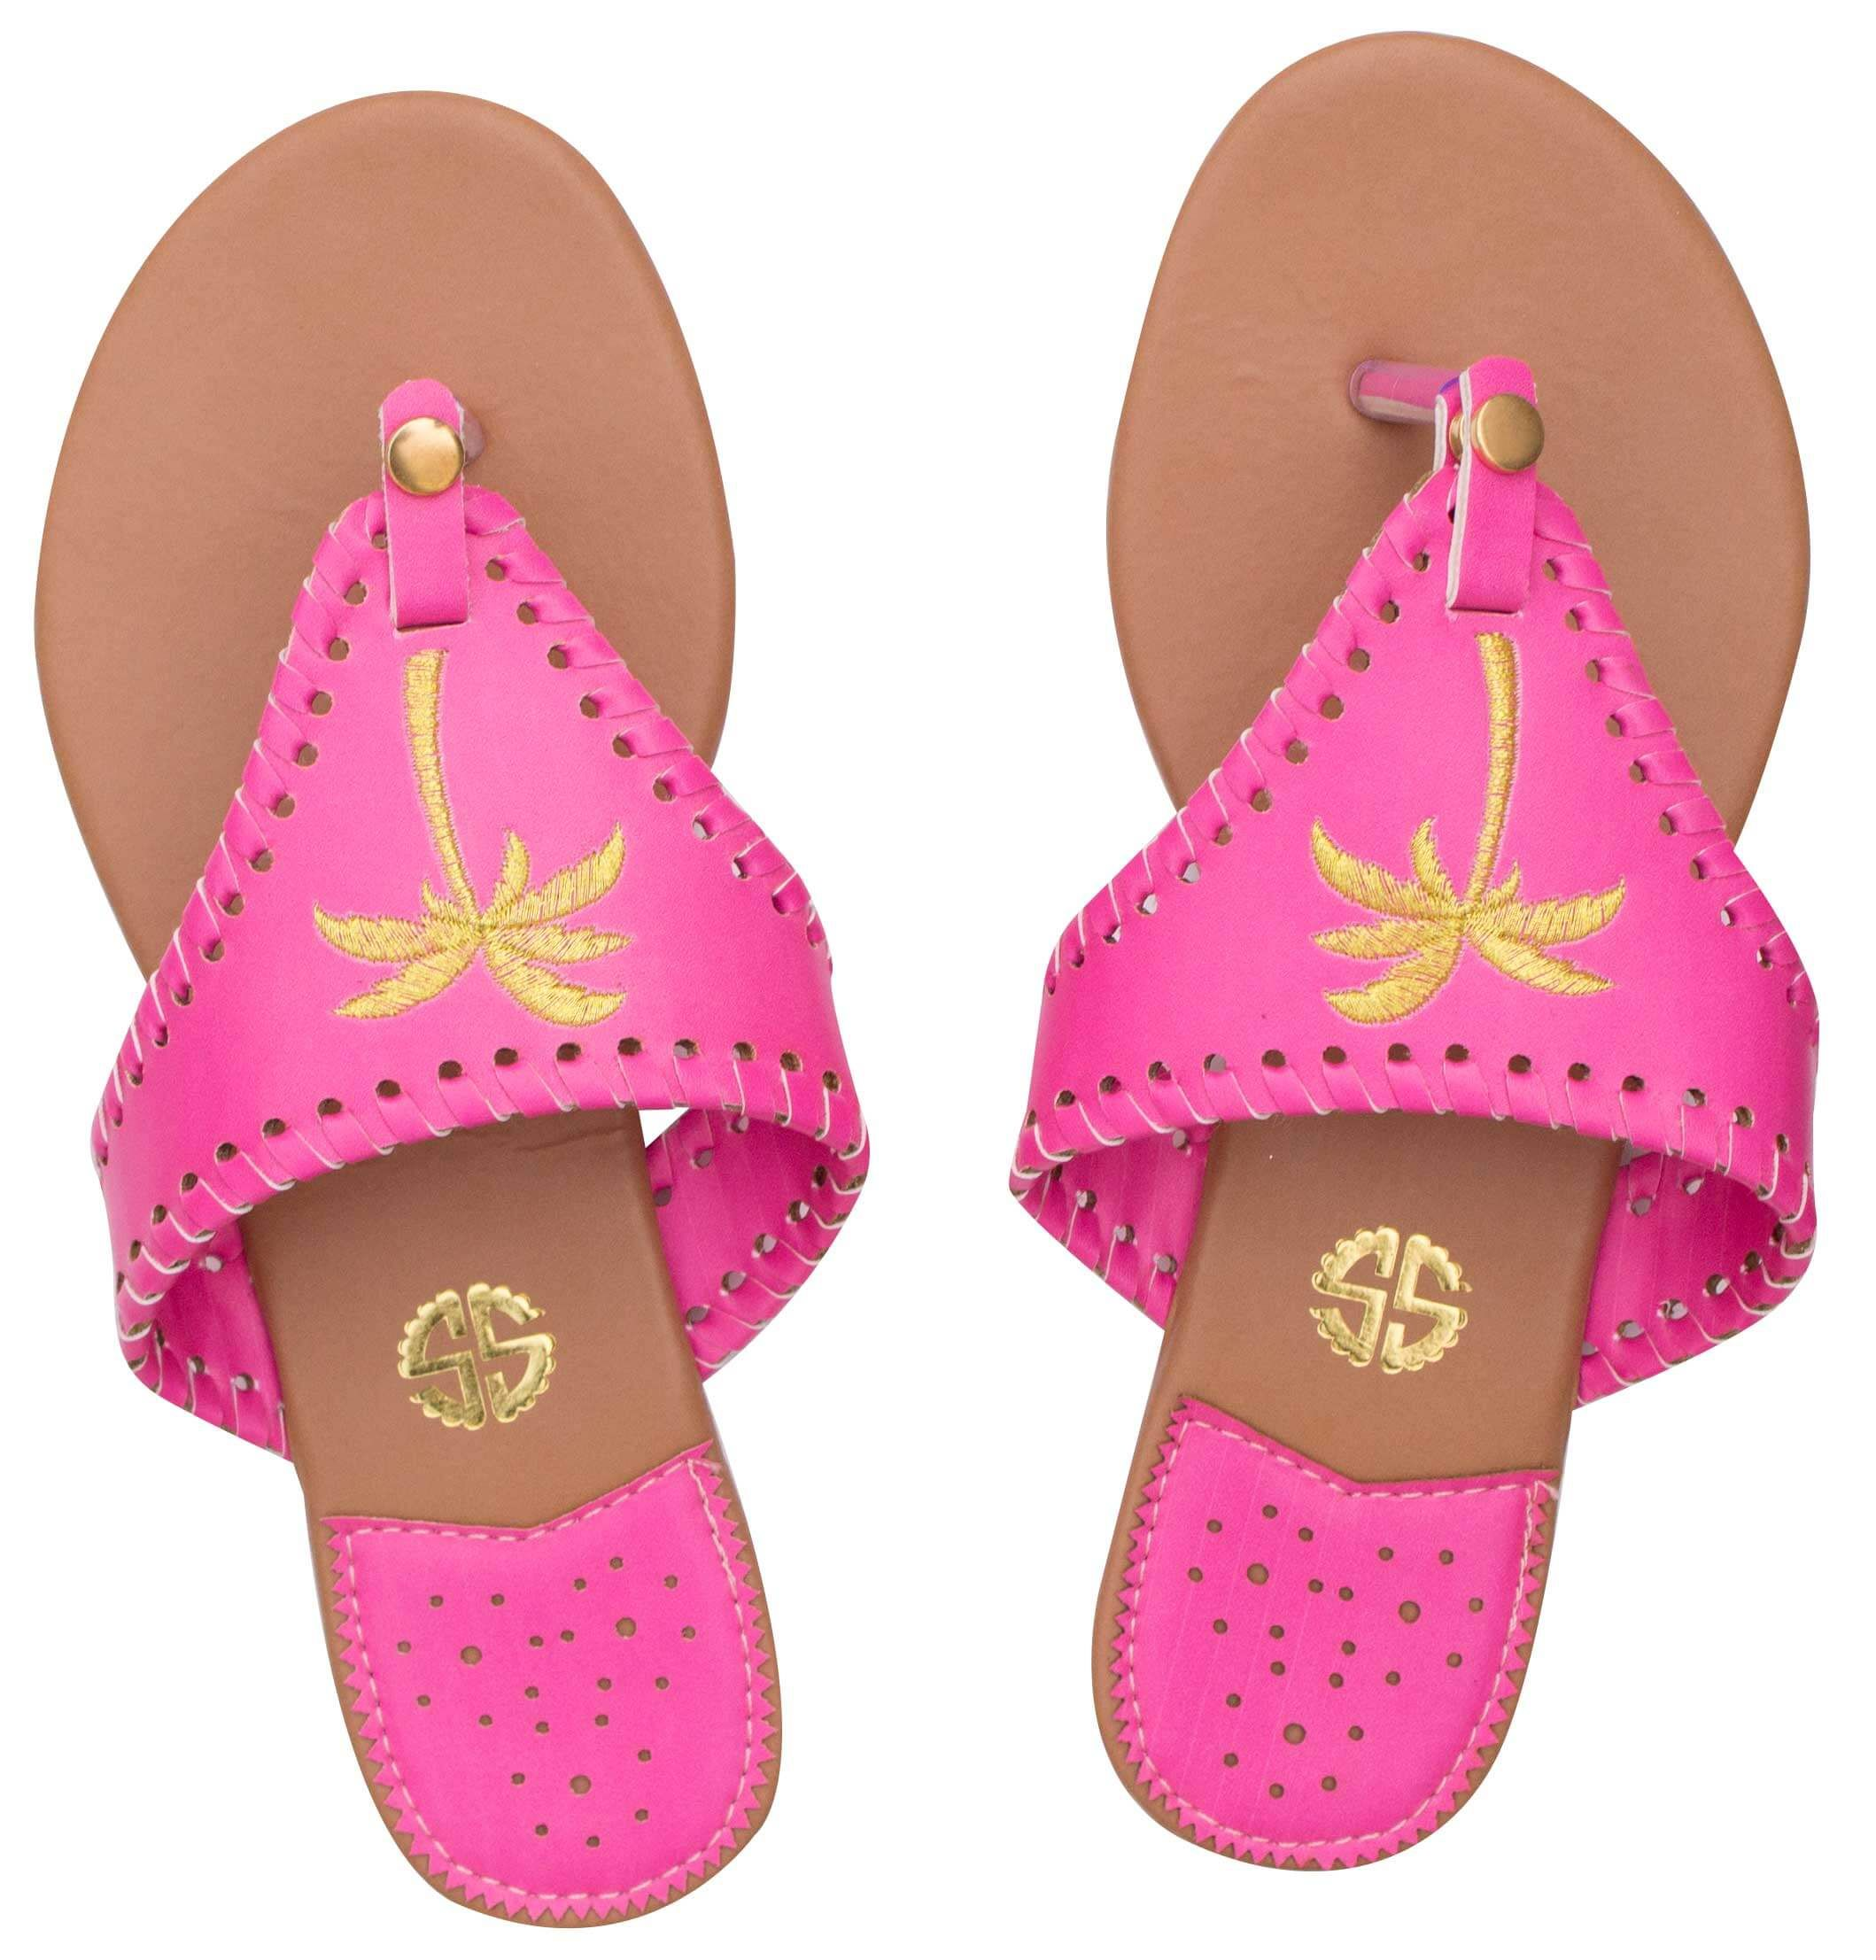 6084207864fb3 Does it get any cuter than Simply Southern sandals   simplysouthern   pineapplesandals